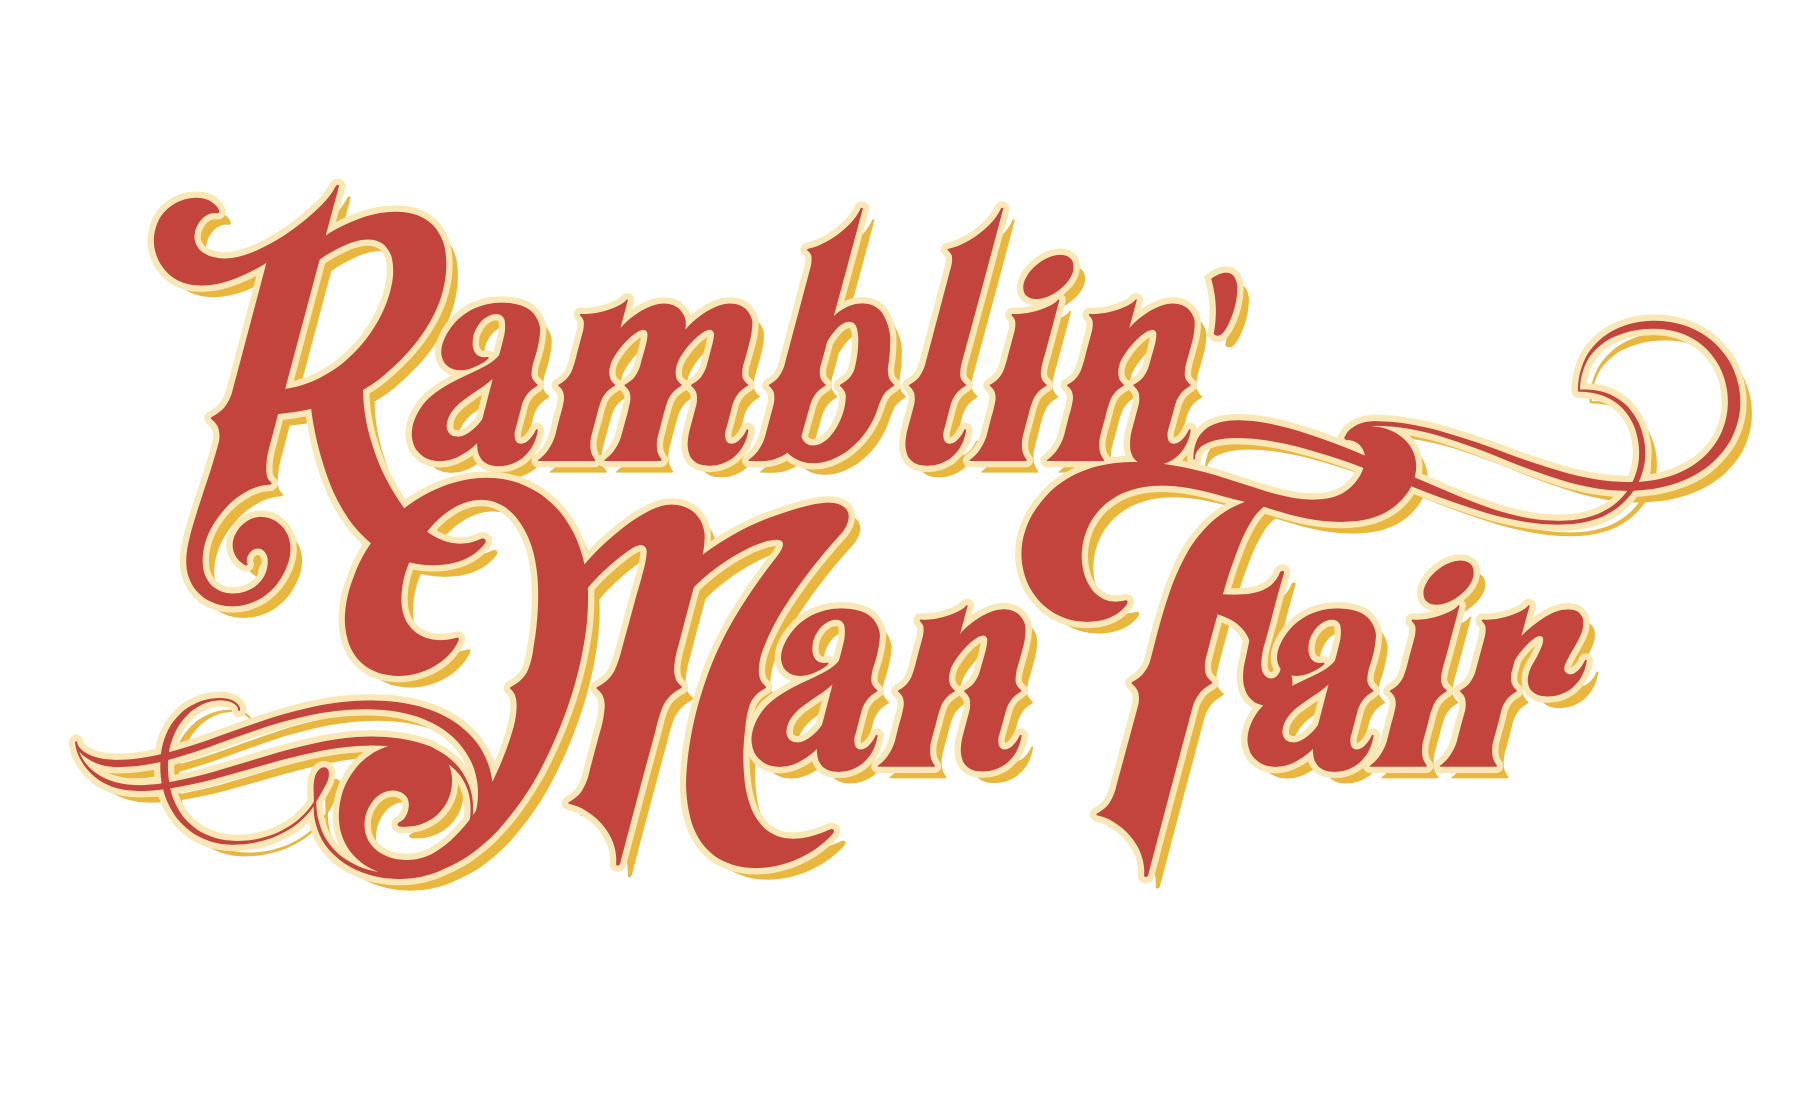 Who Should I Look Out For At Ramblin' Man 2019?